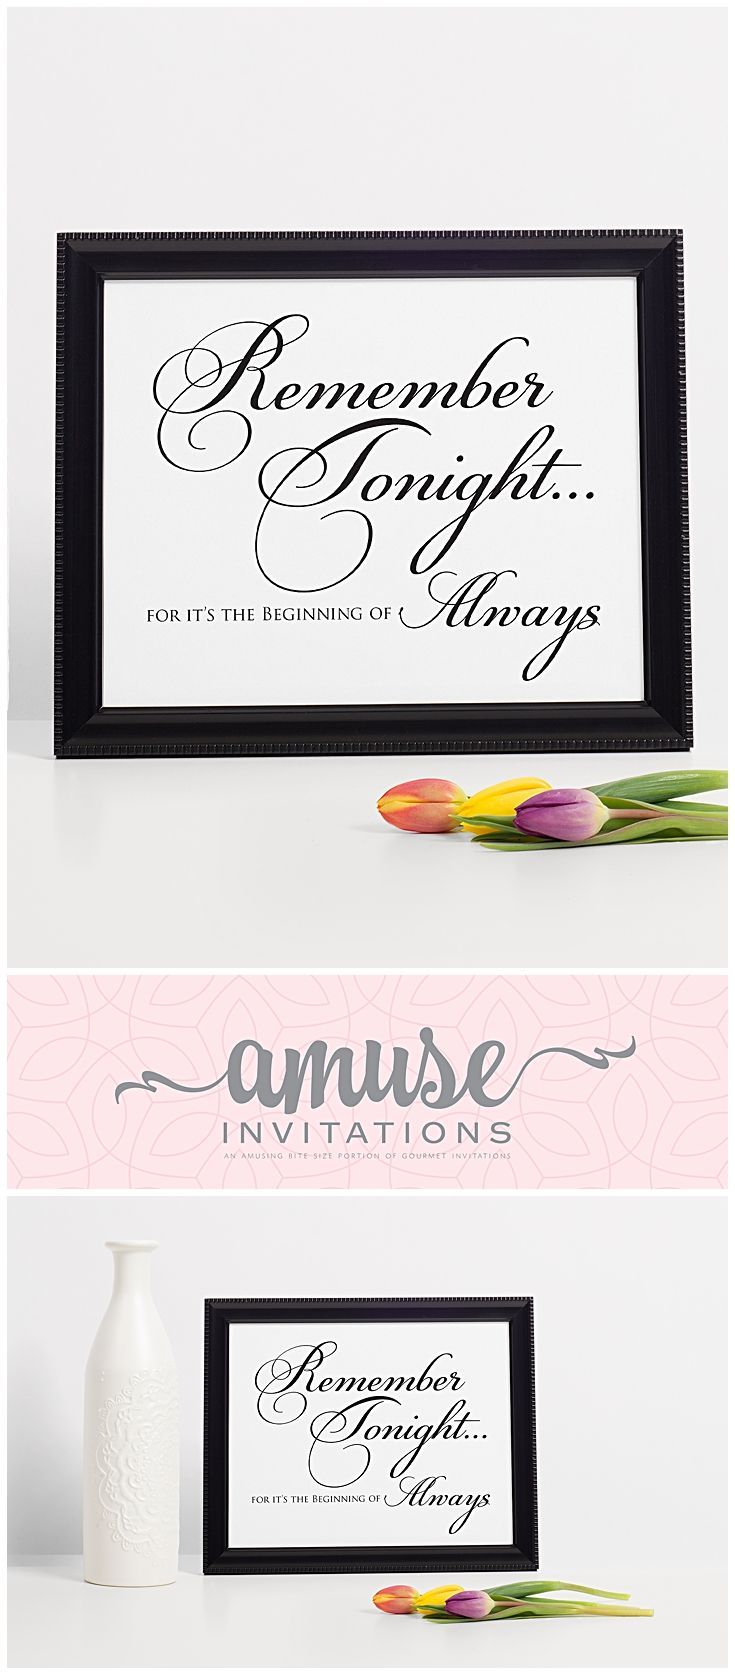 Quotes For Wedding Reception Images Wedding Decoration Ideas